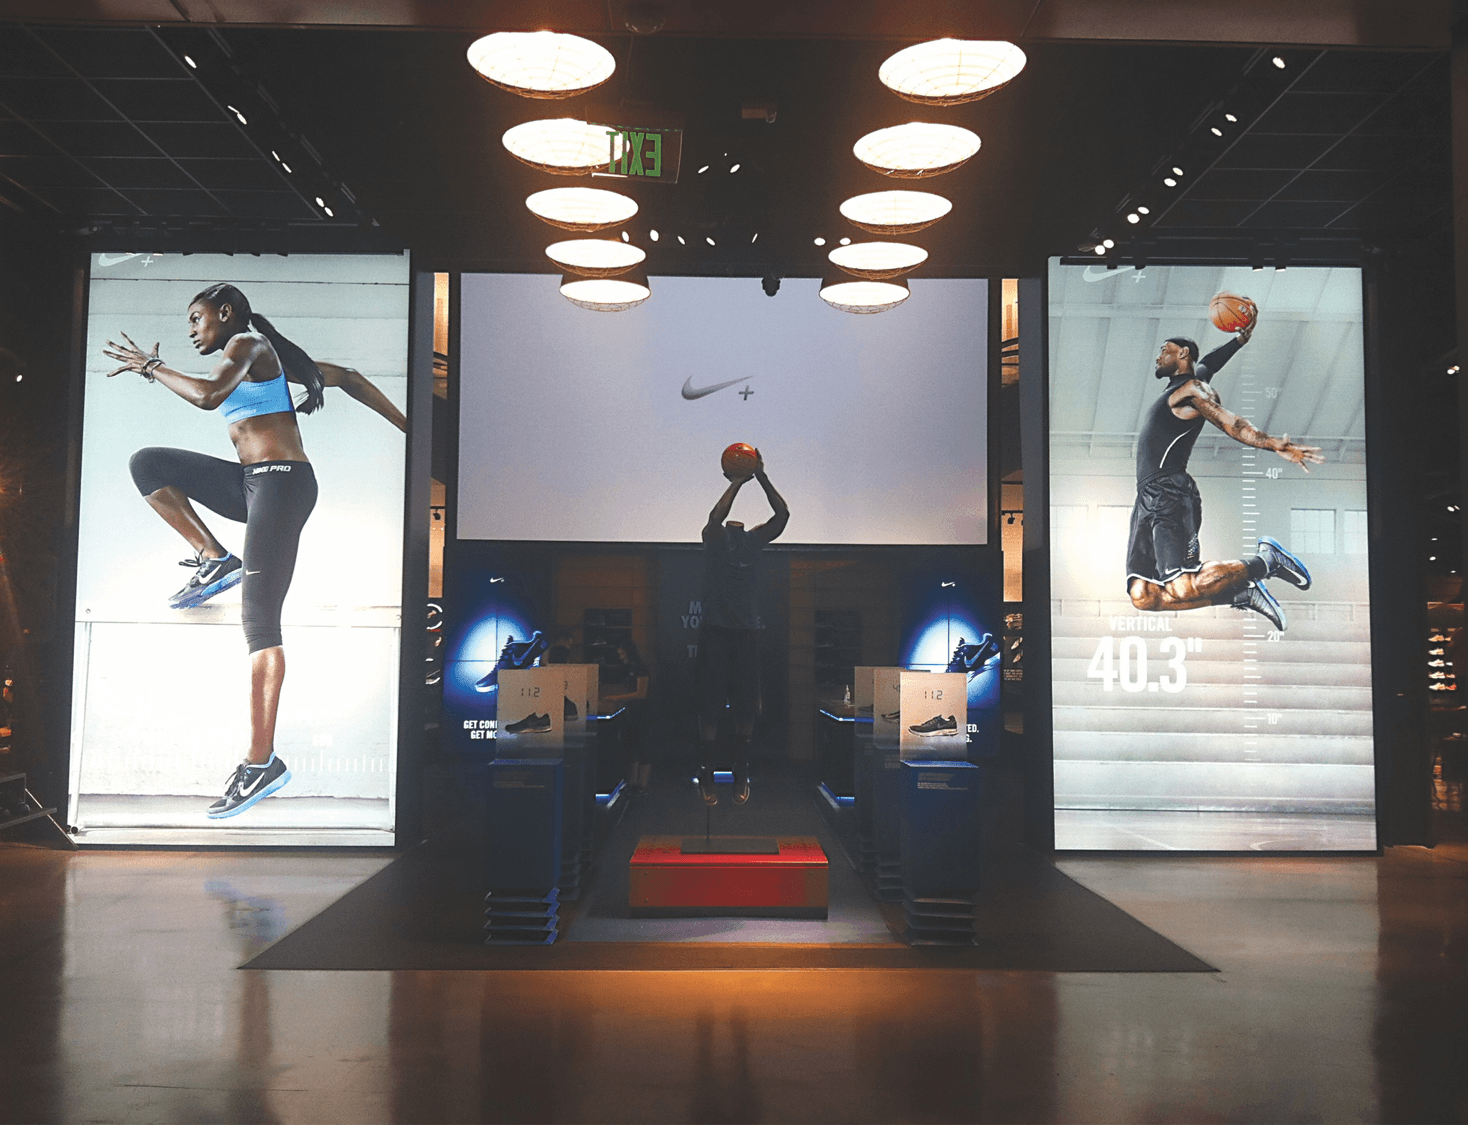 Nike's Innovation Space